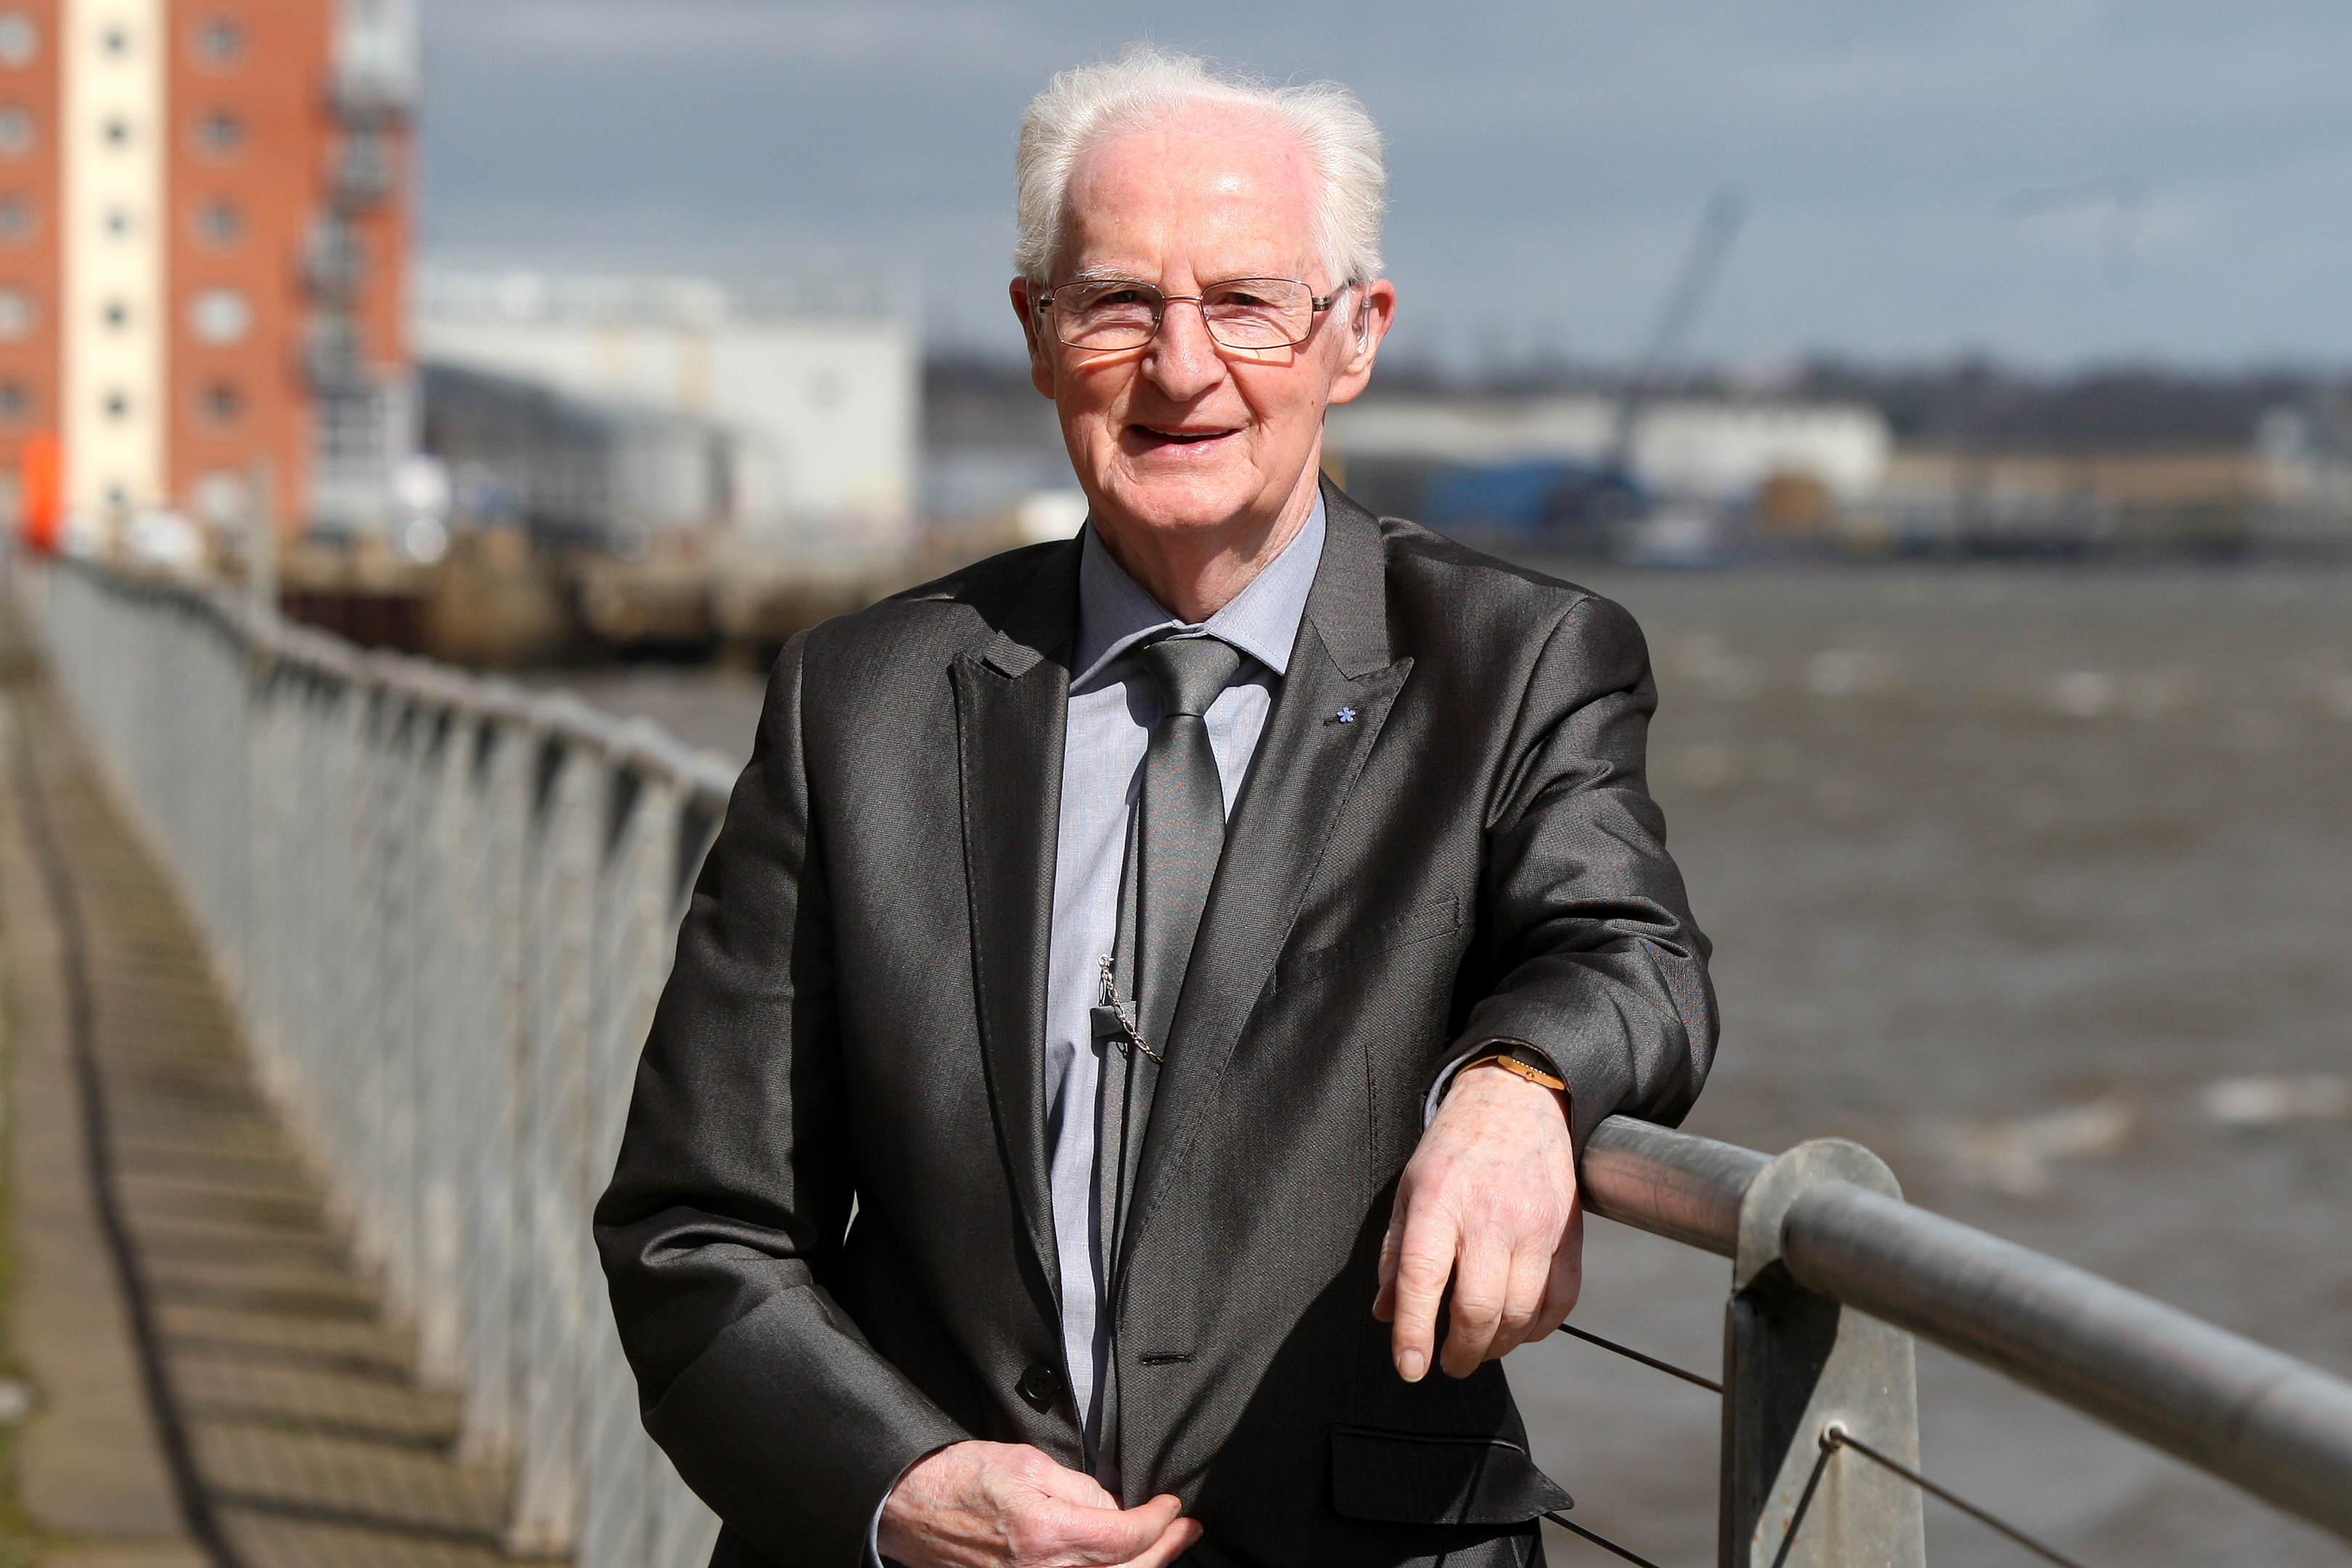 Former Lord Provost John Letford spoke exclusively to the Tele.